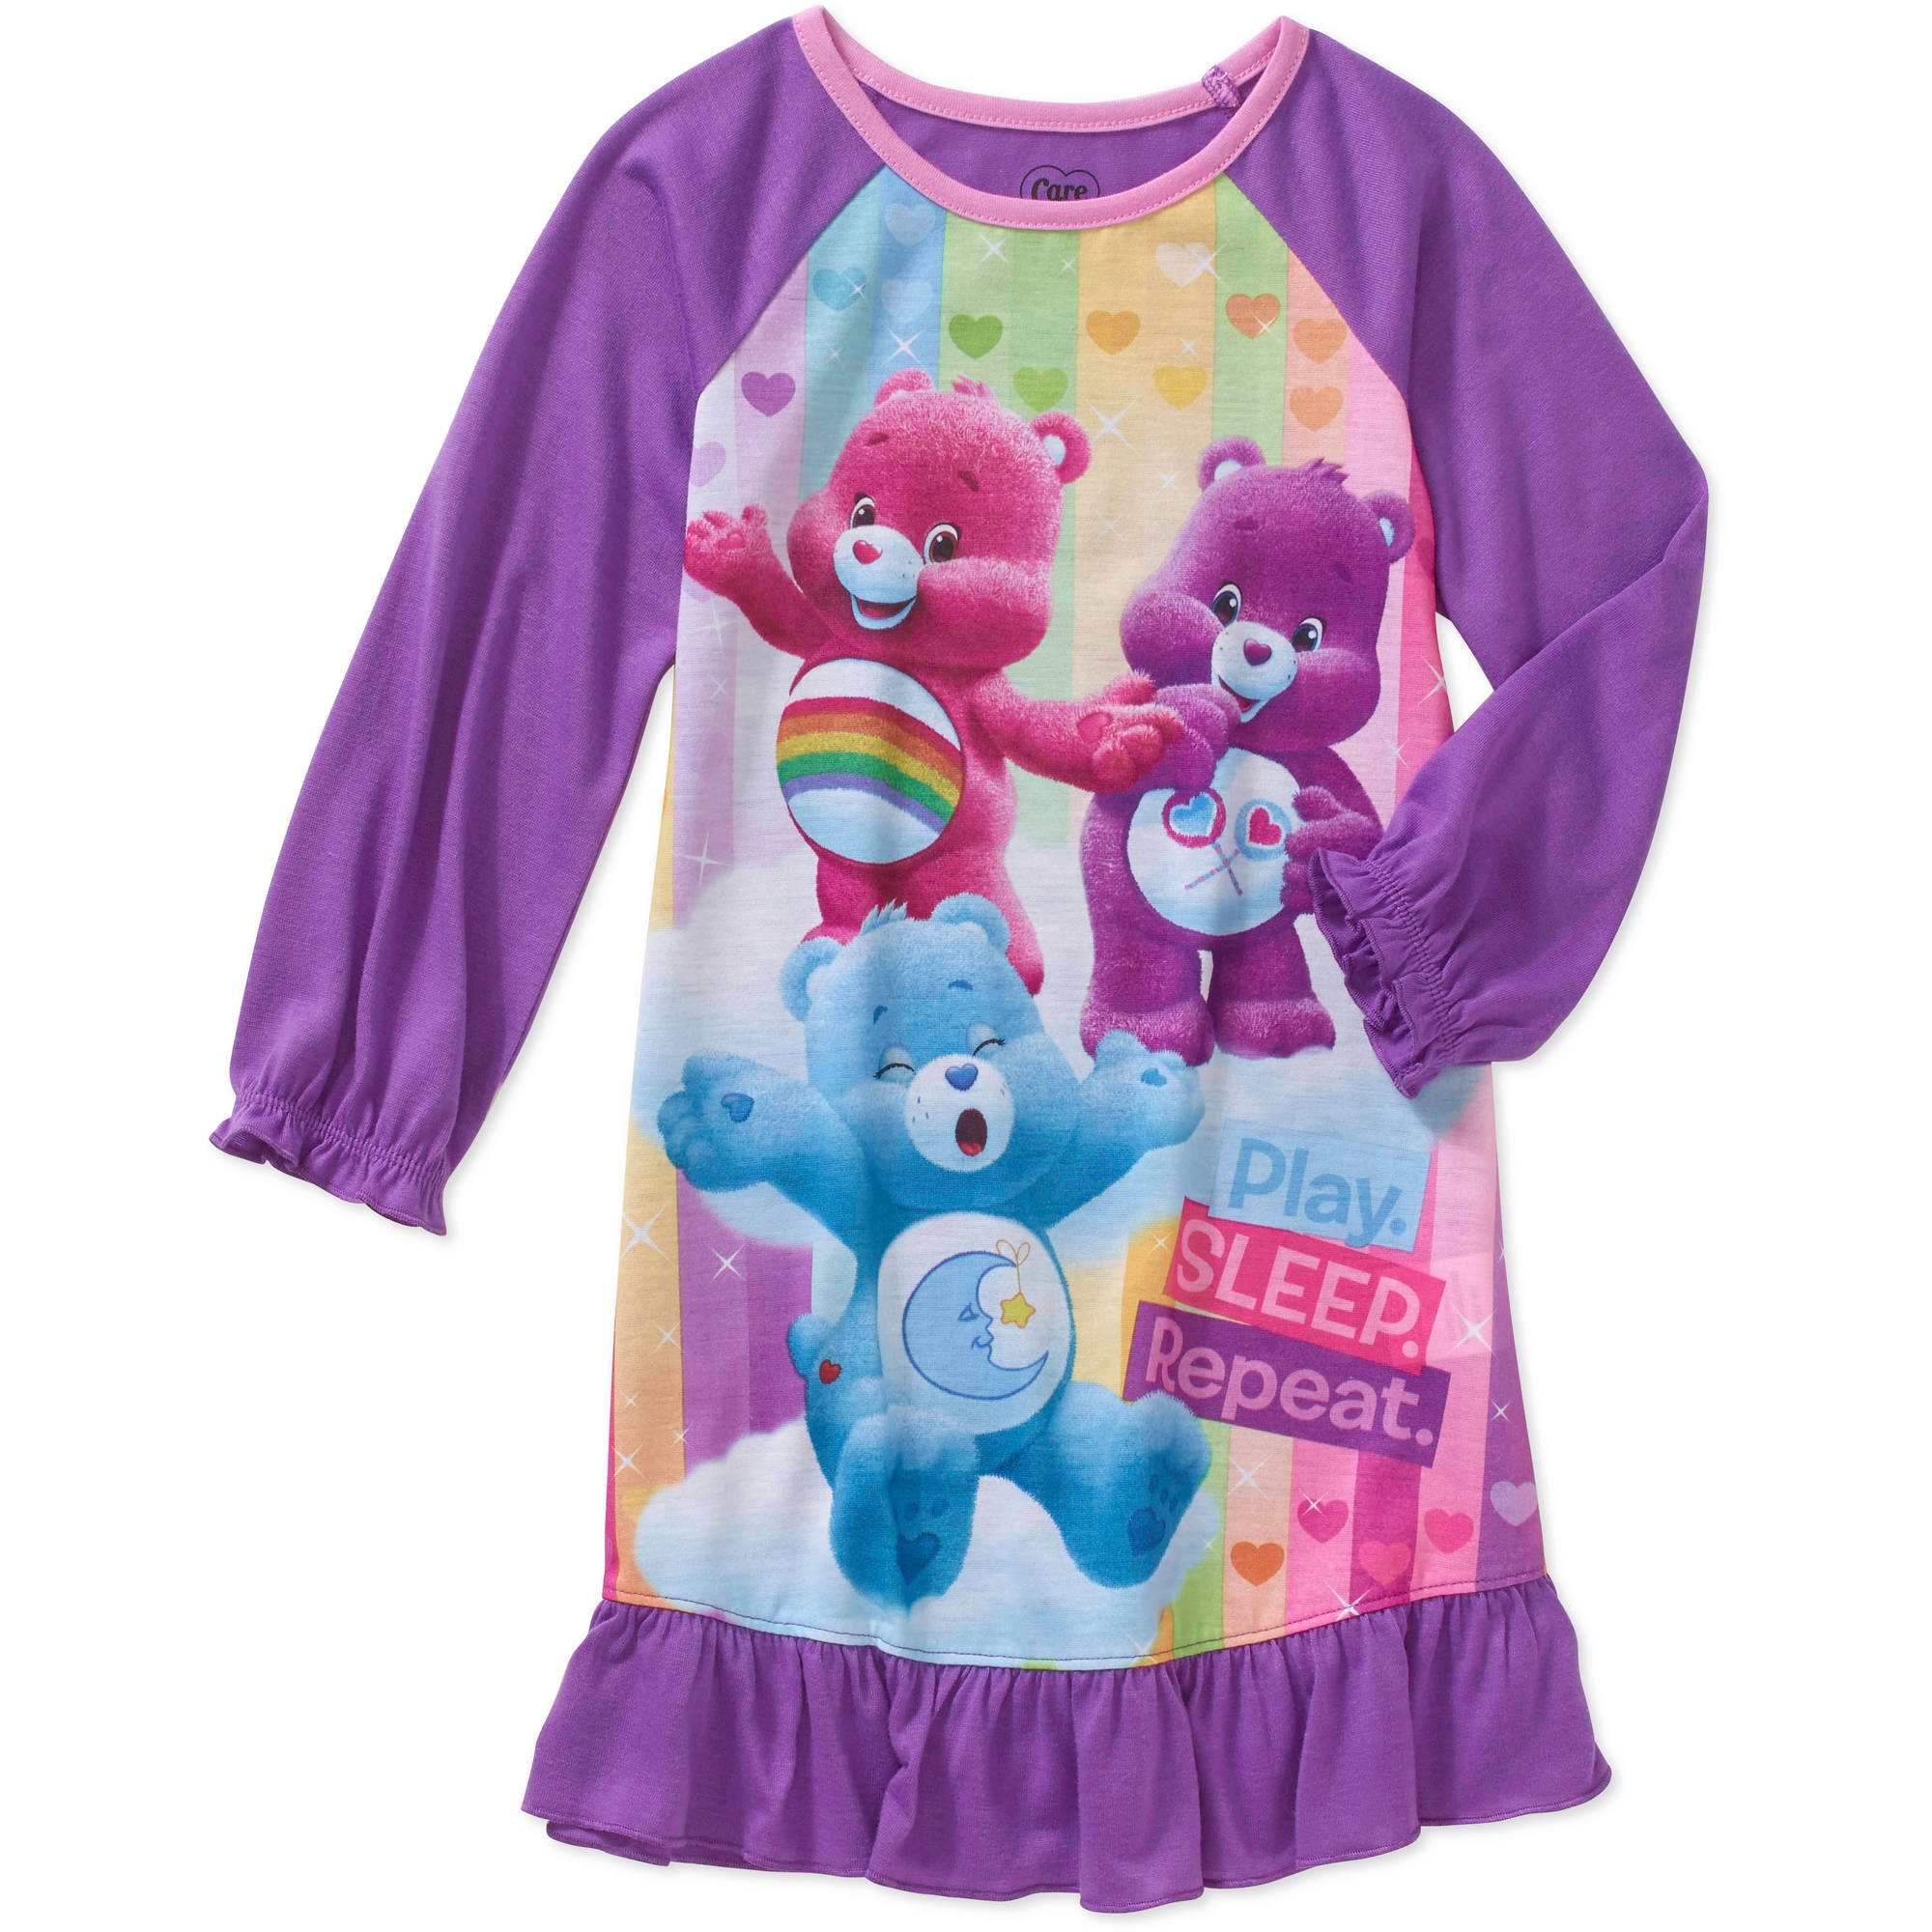 Care Bears Toddler Girls' Nightgown